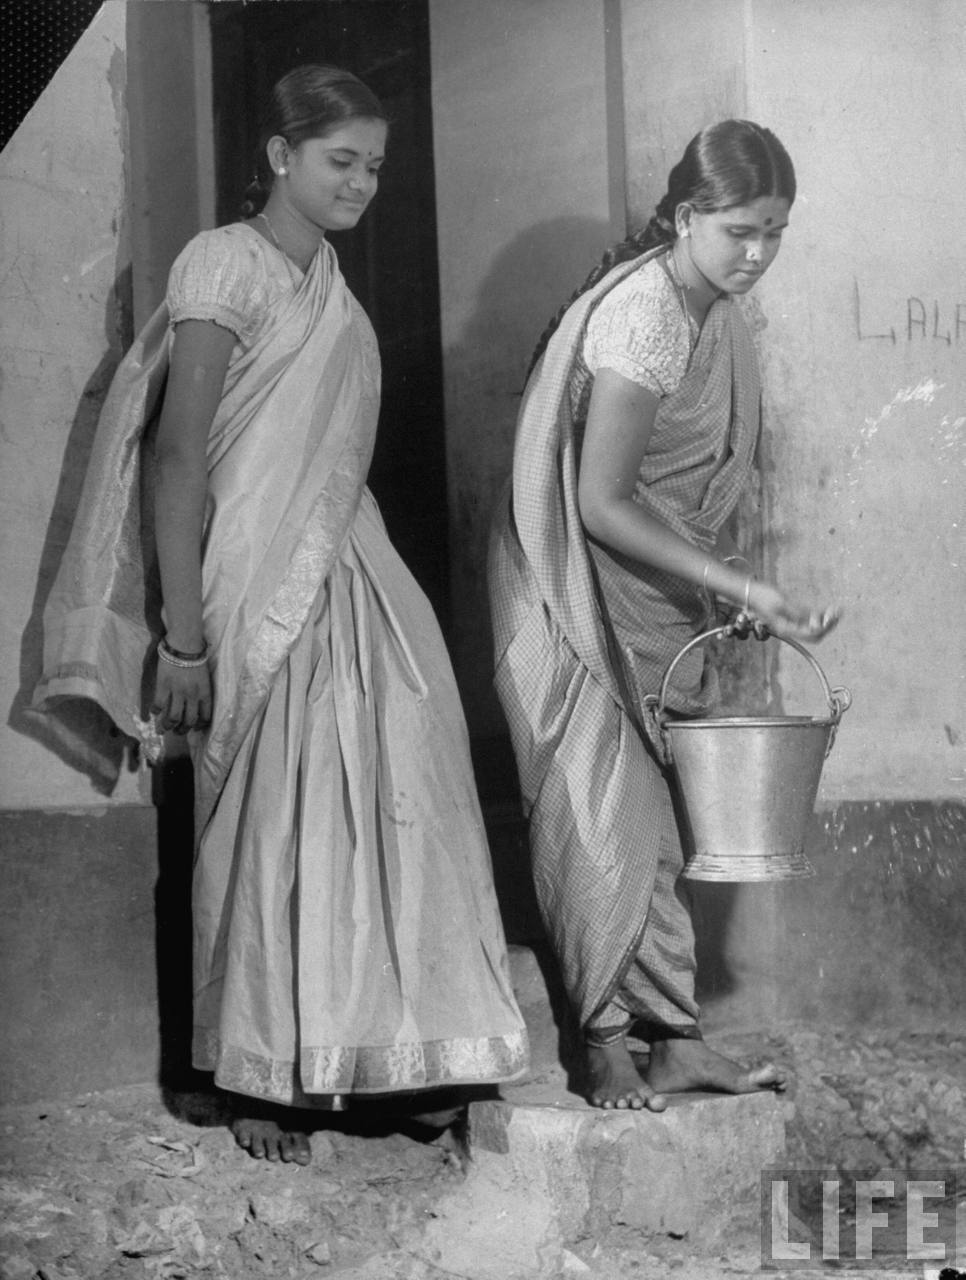 Two young Hindu women